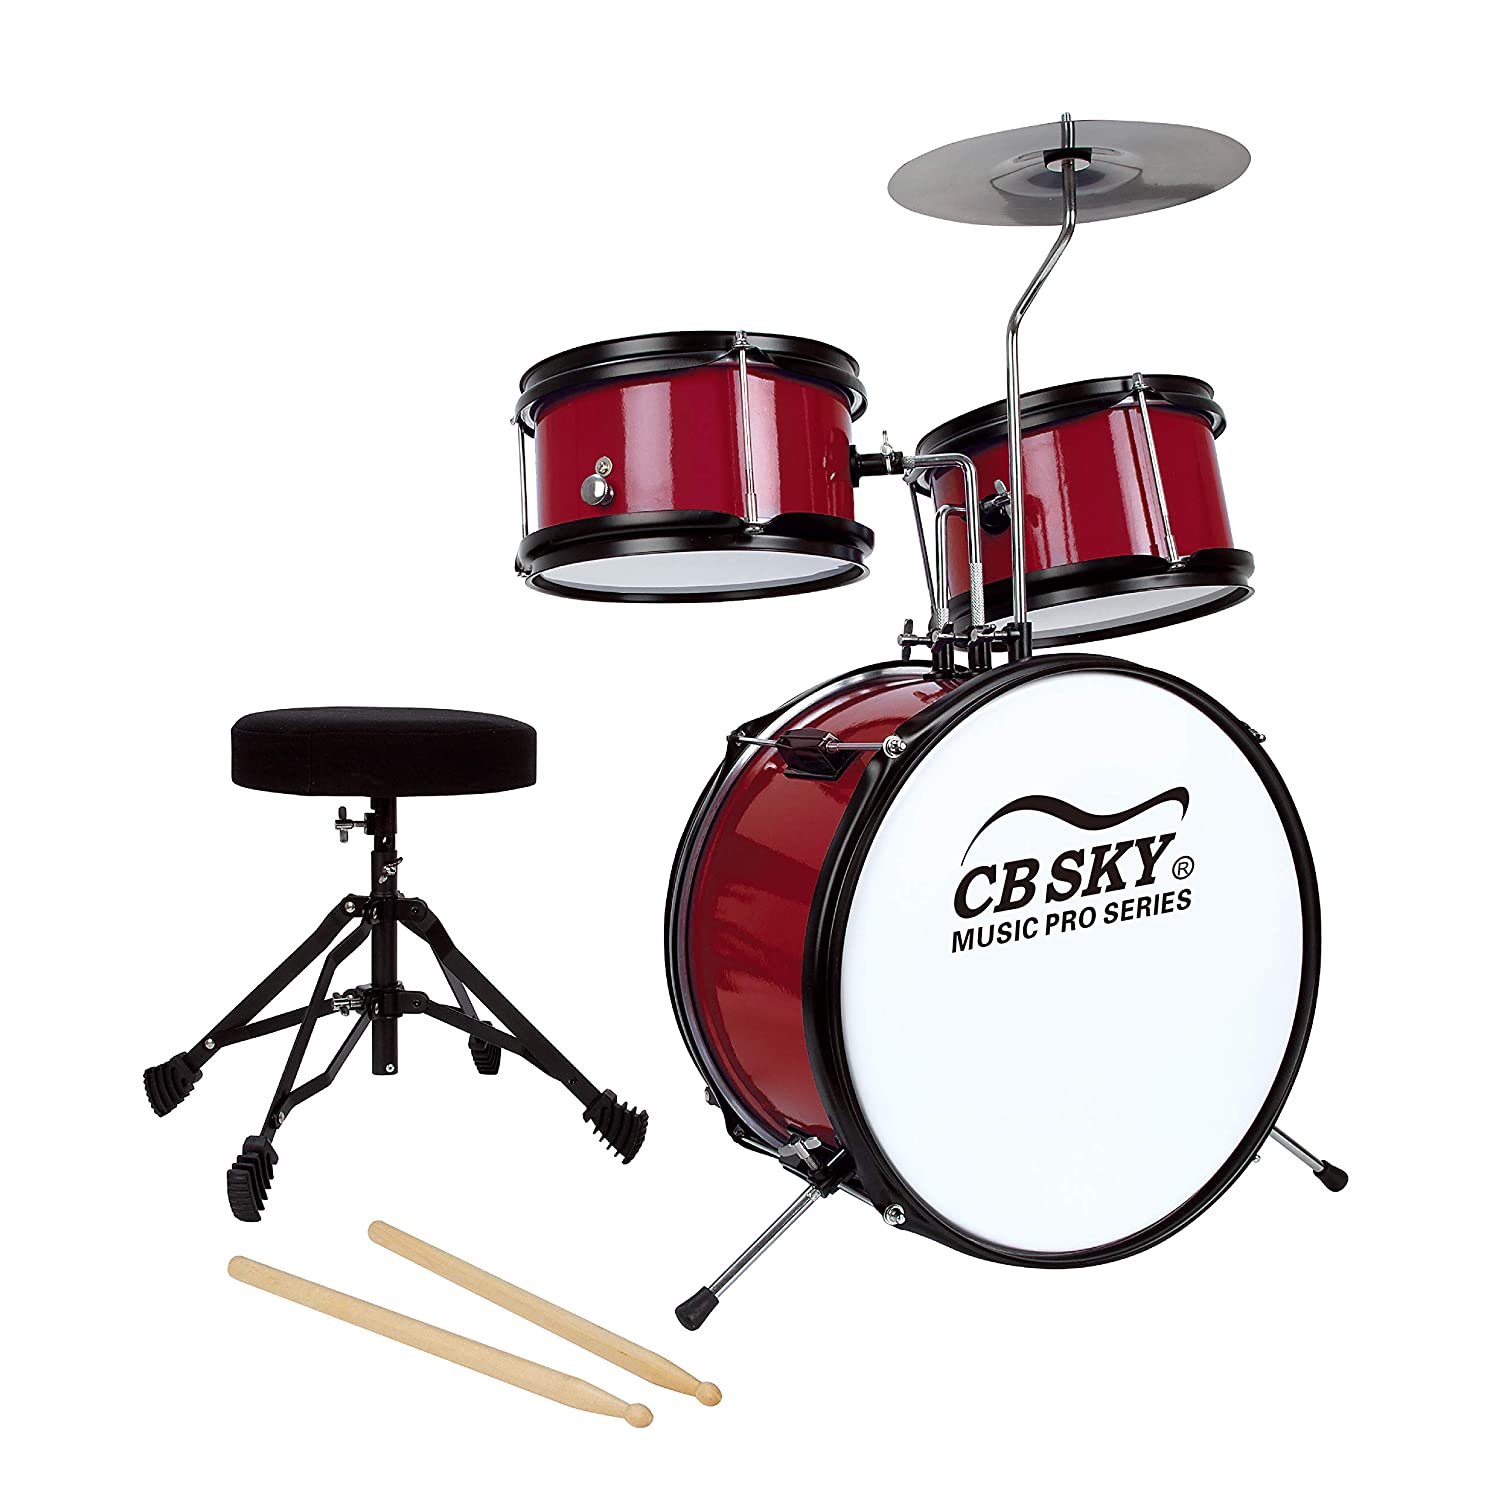 CB Sky 5-piece Junior Drum Set(RED), Kids Percussion Instrument/Kids Musical Toys/Kids Musical Instrument MD318R